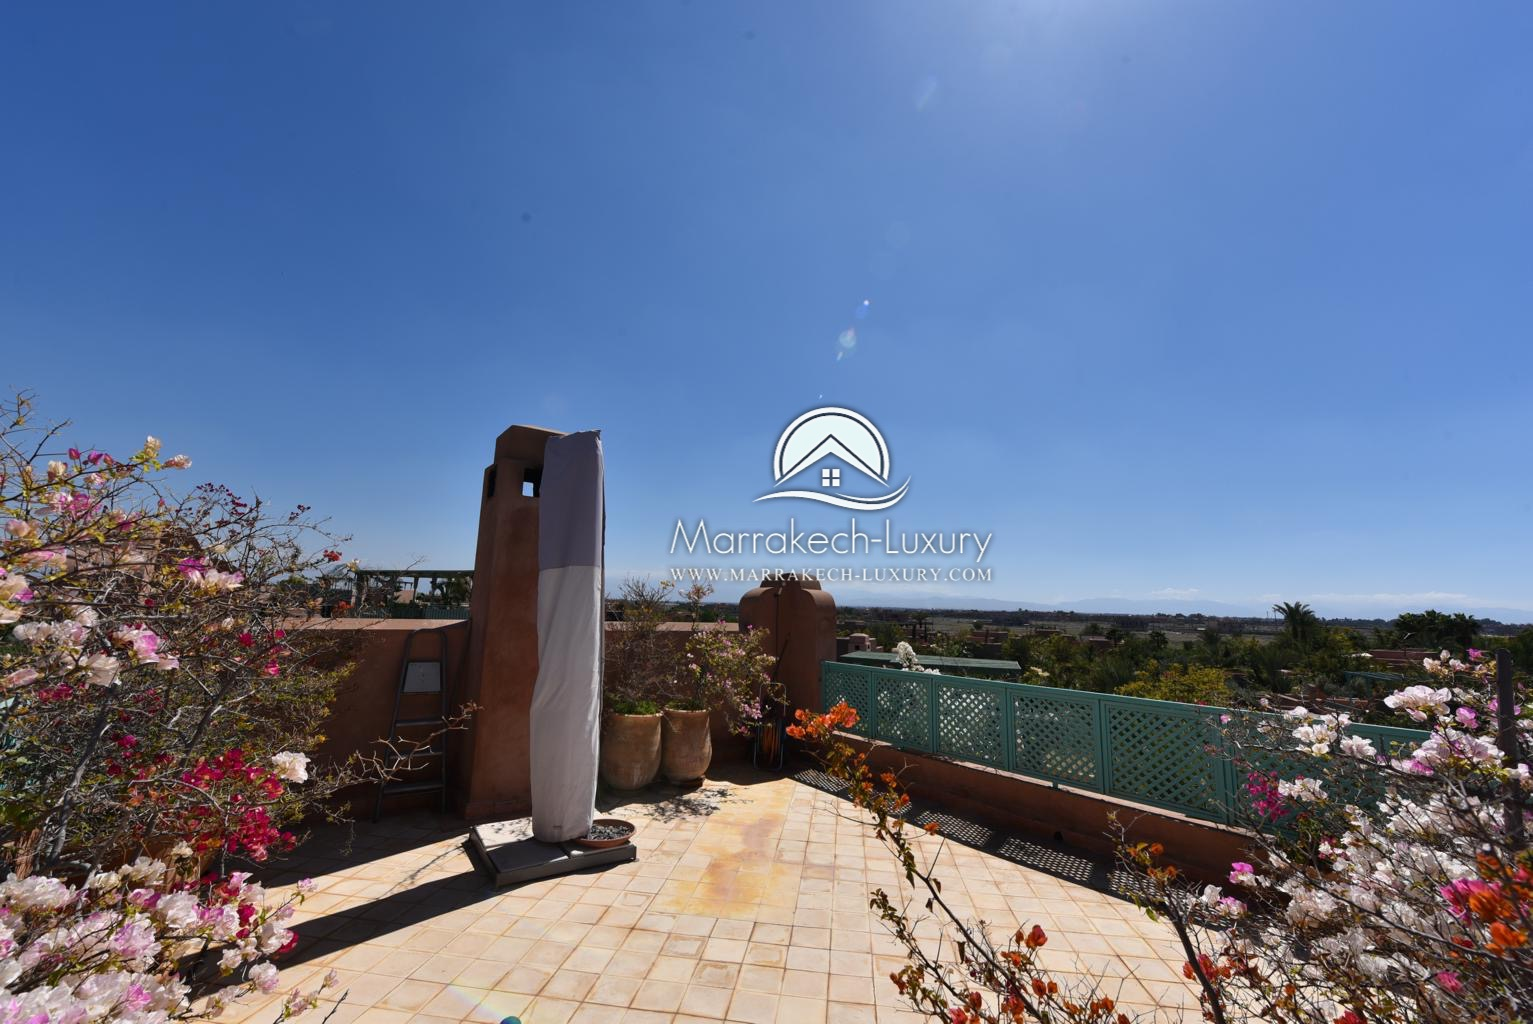 Aptavagd1019 42 agence immobili re marrakech acheter for Agence immobiliere 42